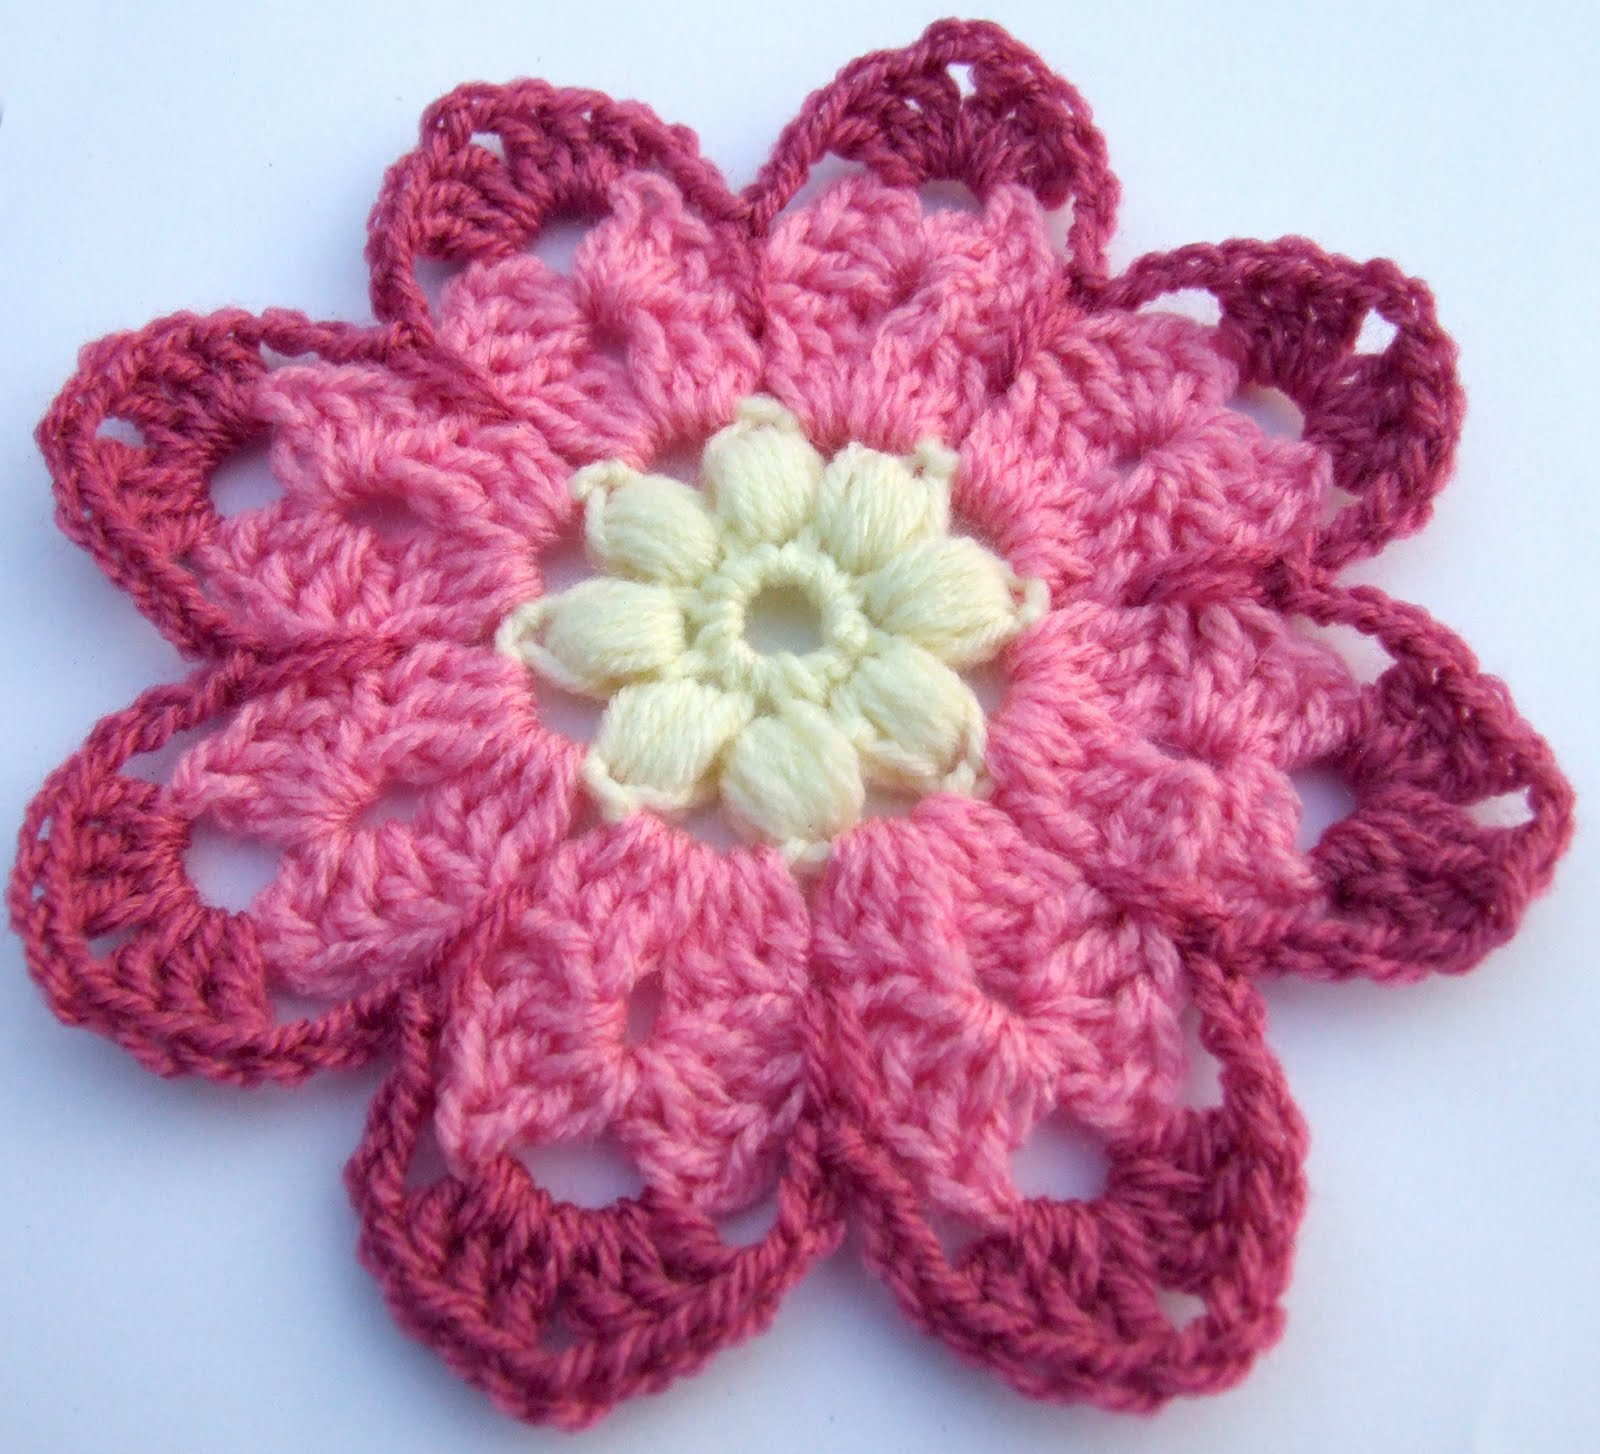 CROCHET FLOWERS FREE PATTERNS – Browse Patterns